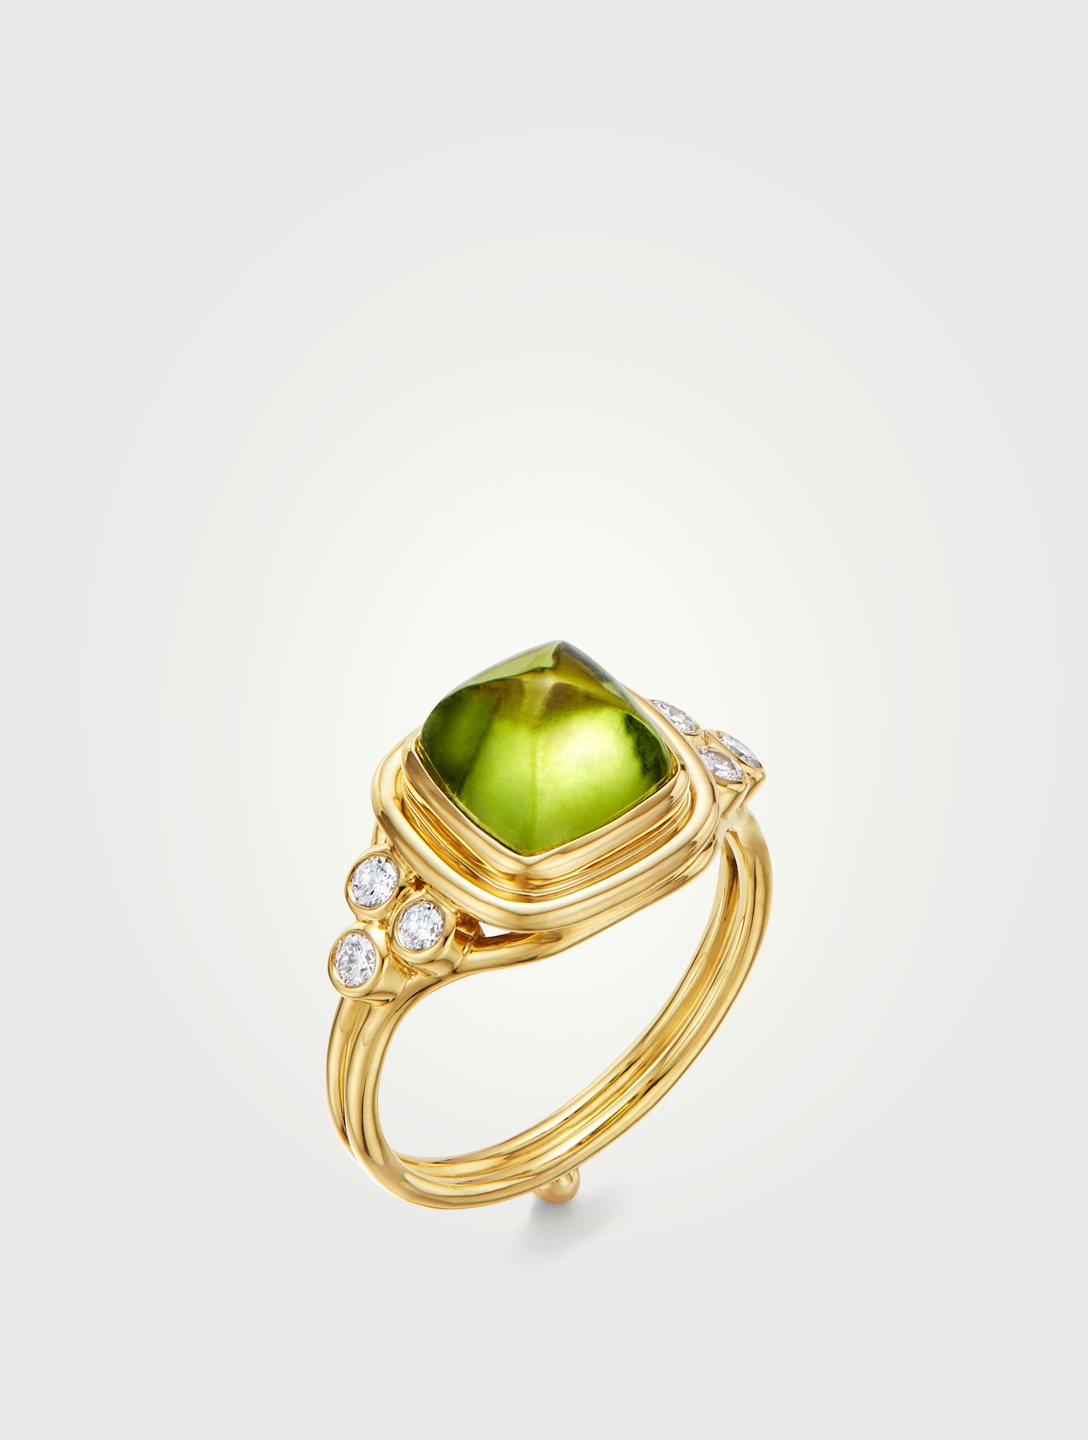 TEMPLE ST. CLAIR 18K Gold Classic Collina Ring With Peridot And Diamonds Women's Metallic